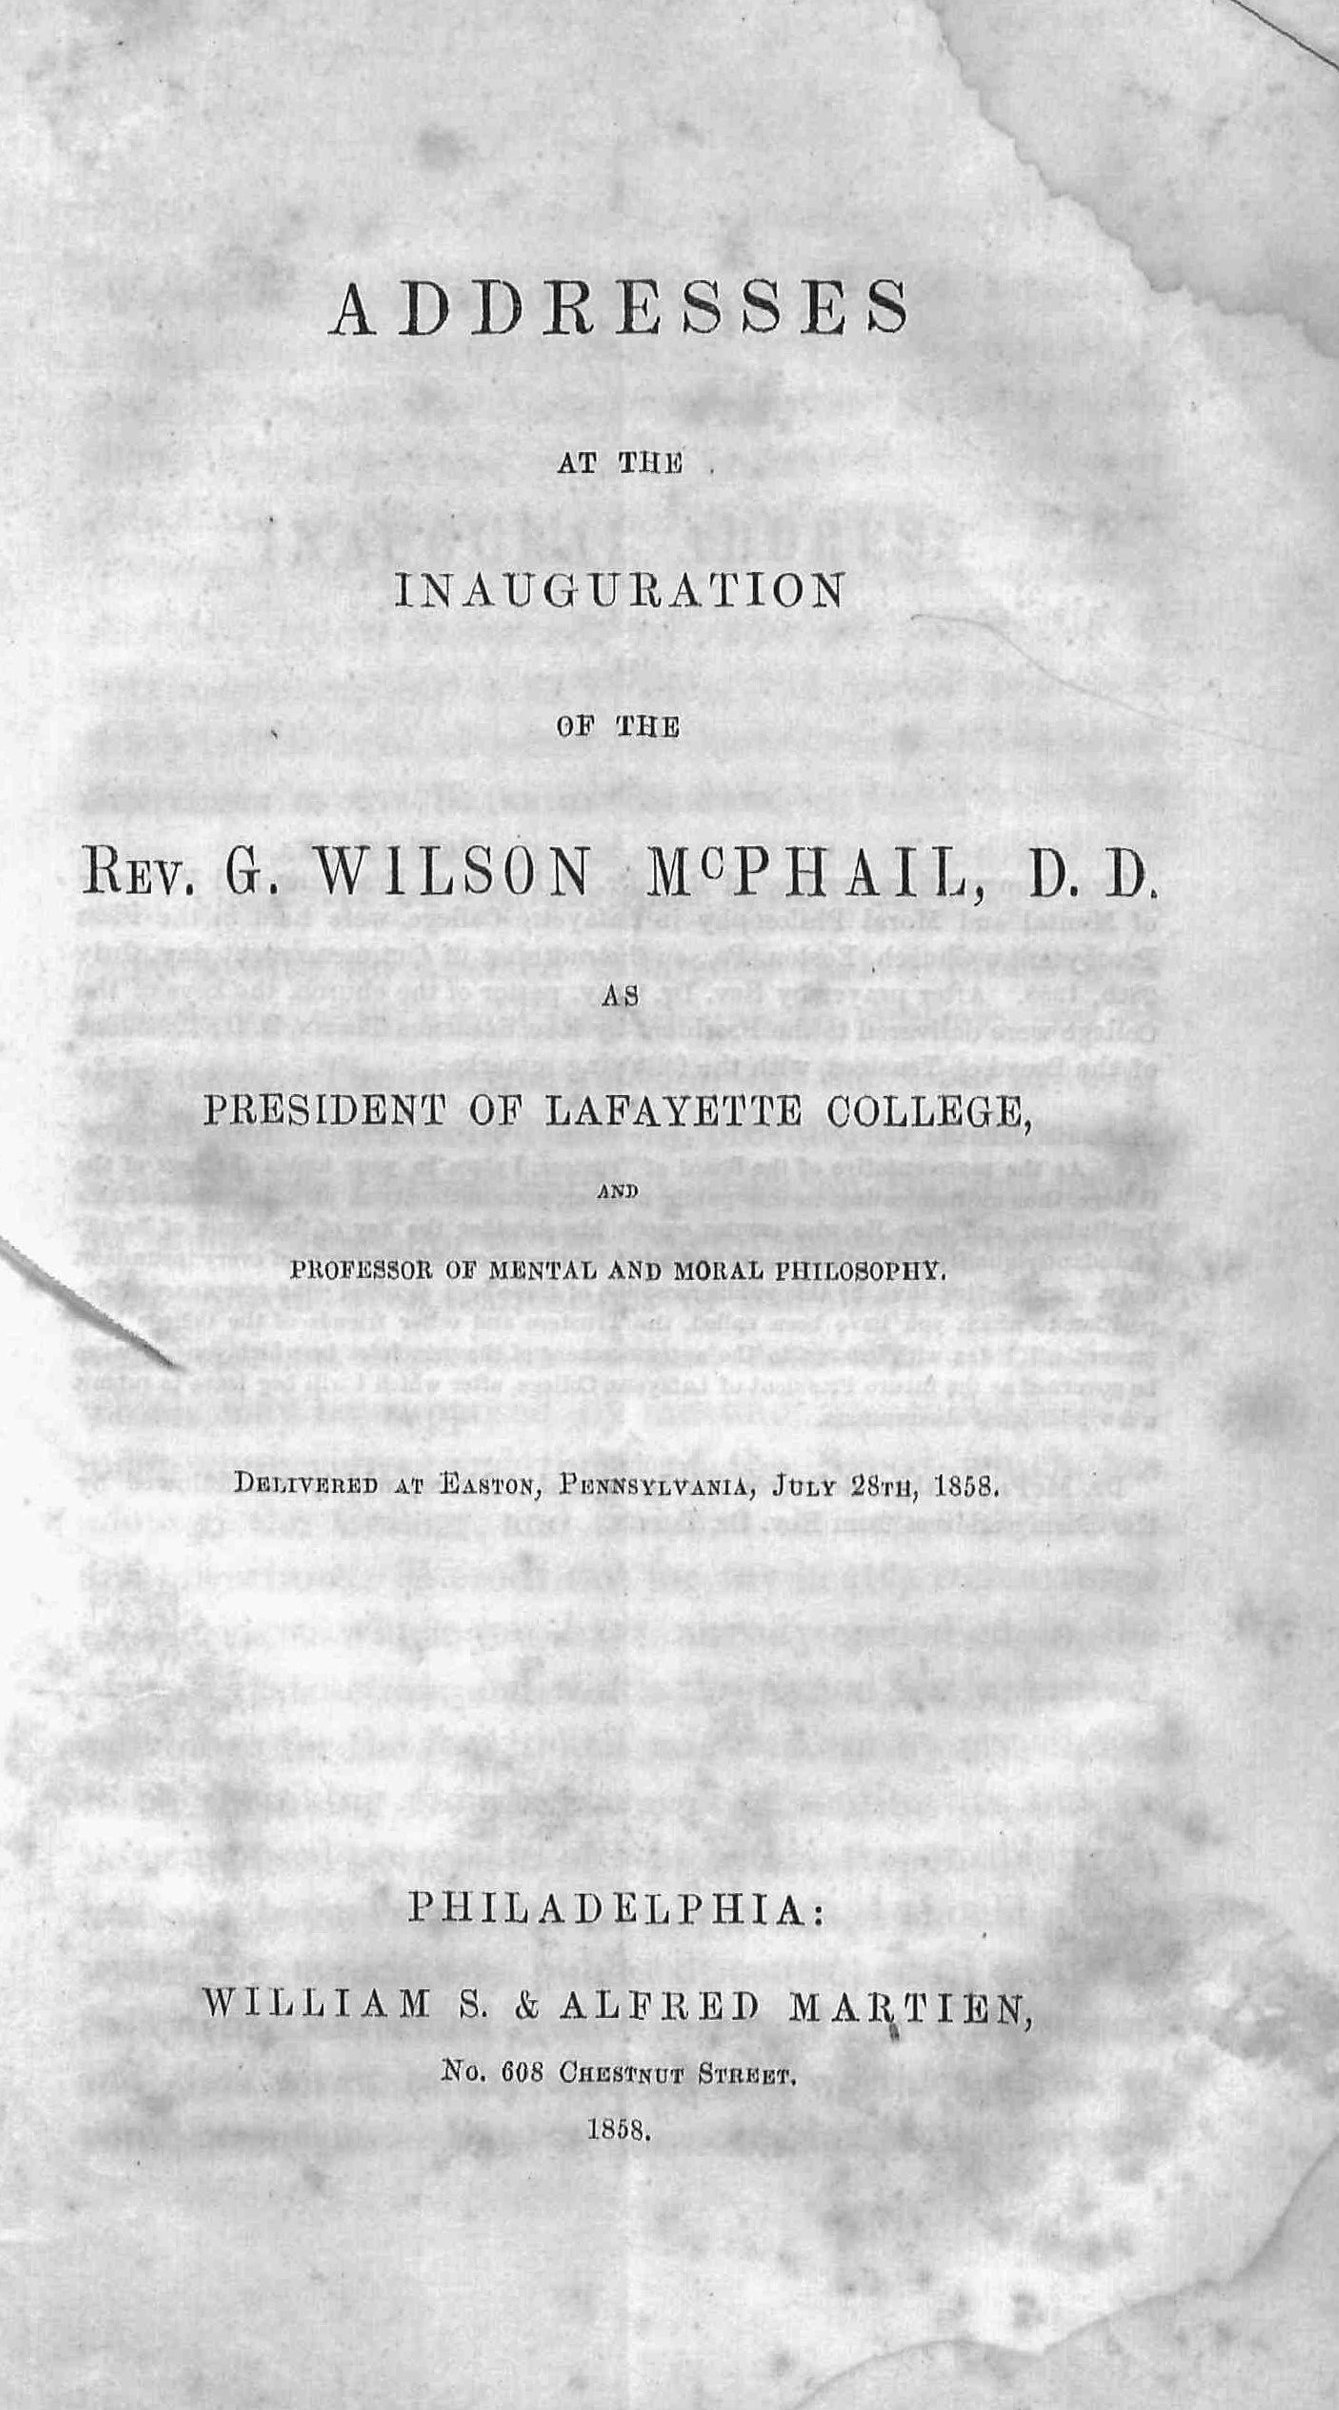 McPhail, George - Addresses at the Inauguration.jpg